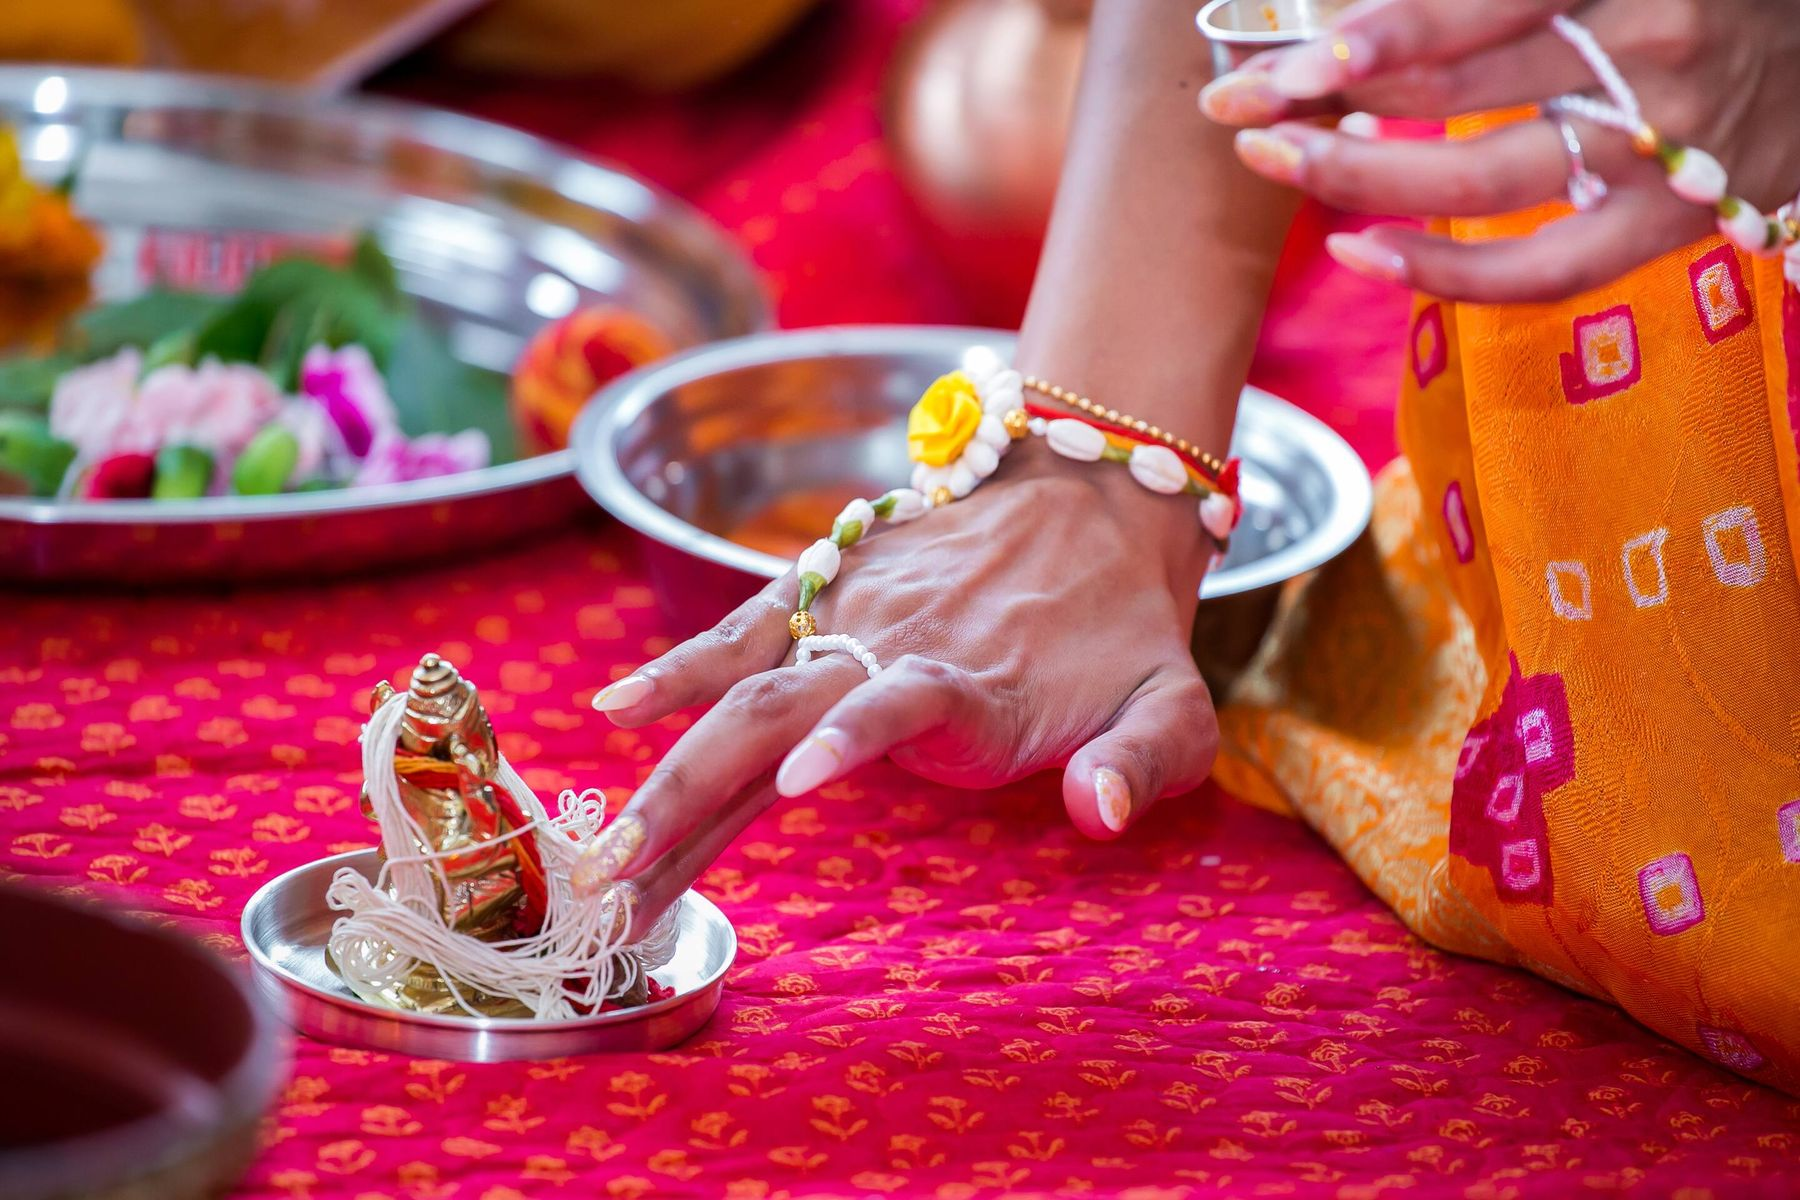 Make Your Puja Tablecloth Dussehra-Ready with These Tips